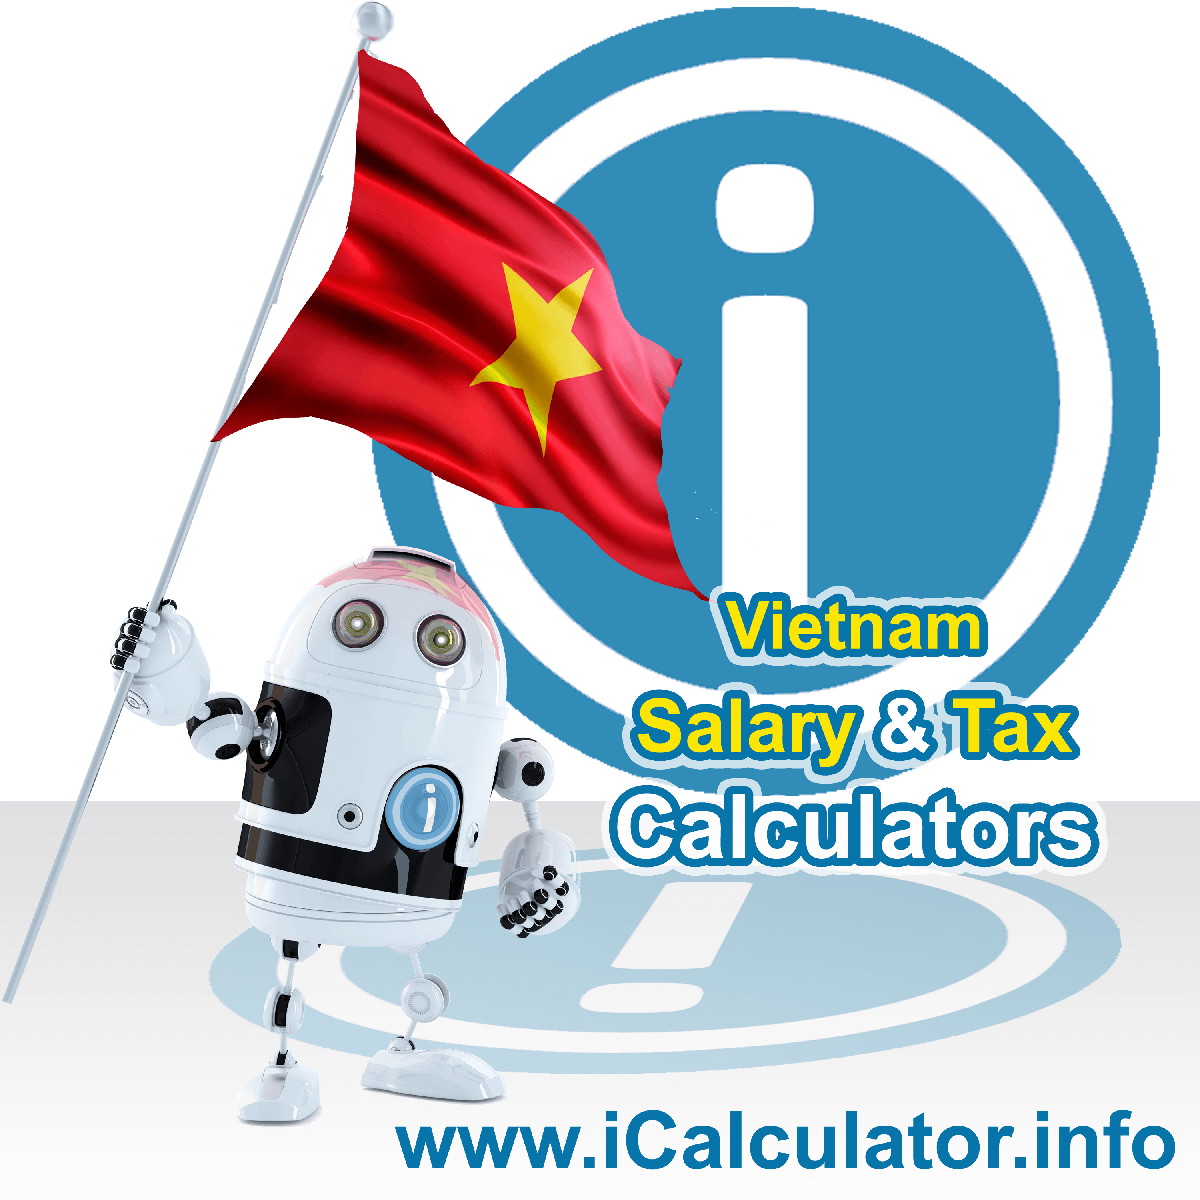 Vietnam Tax Calculator. This image shows the Vietnam flag and information relating to the tax formula for the Vietnam Salary Calculator